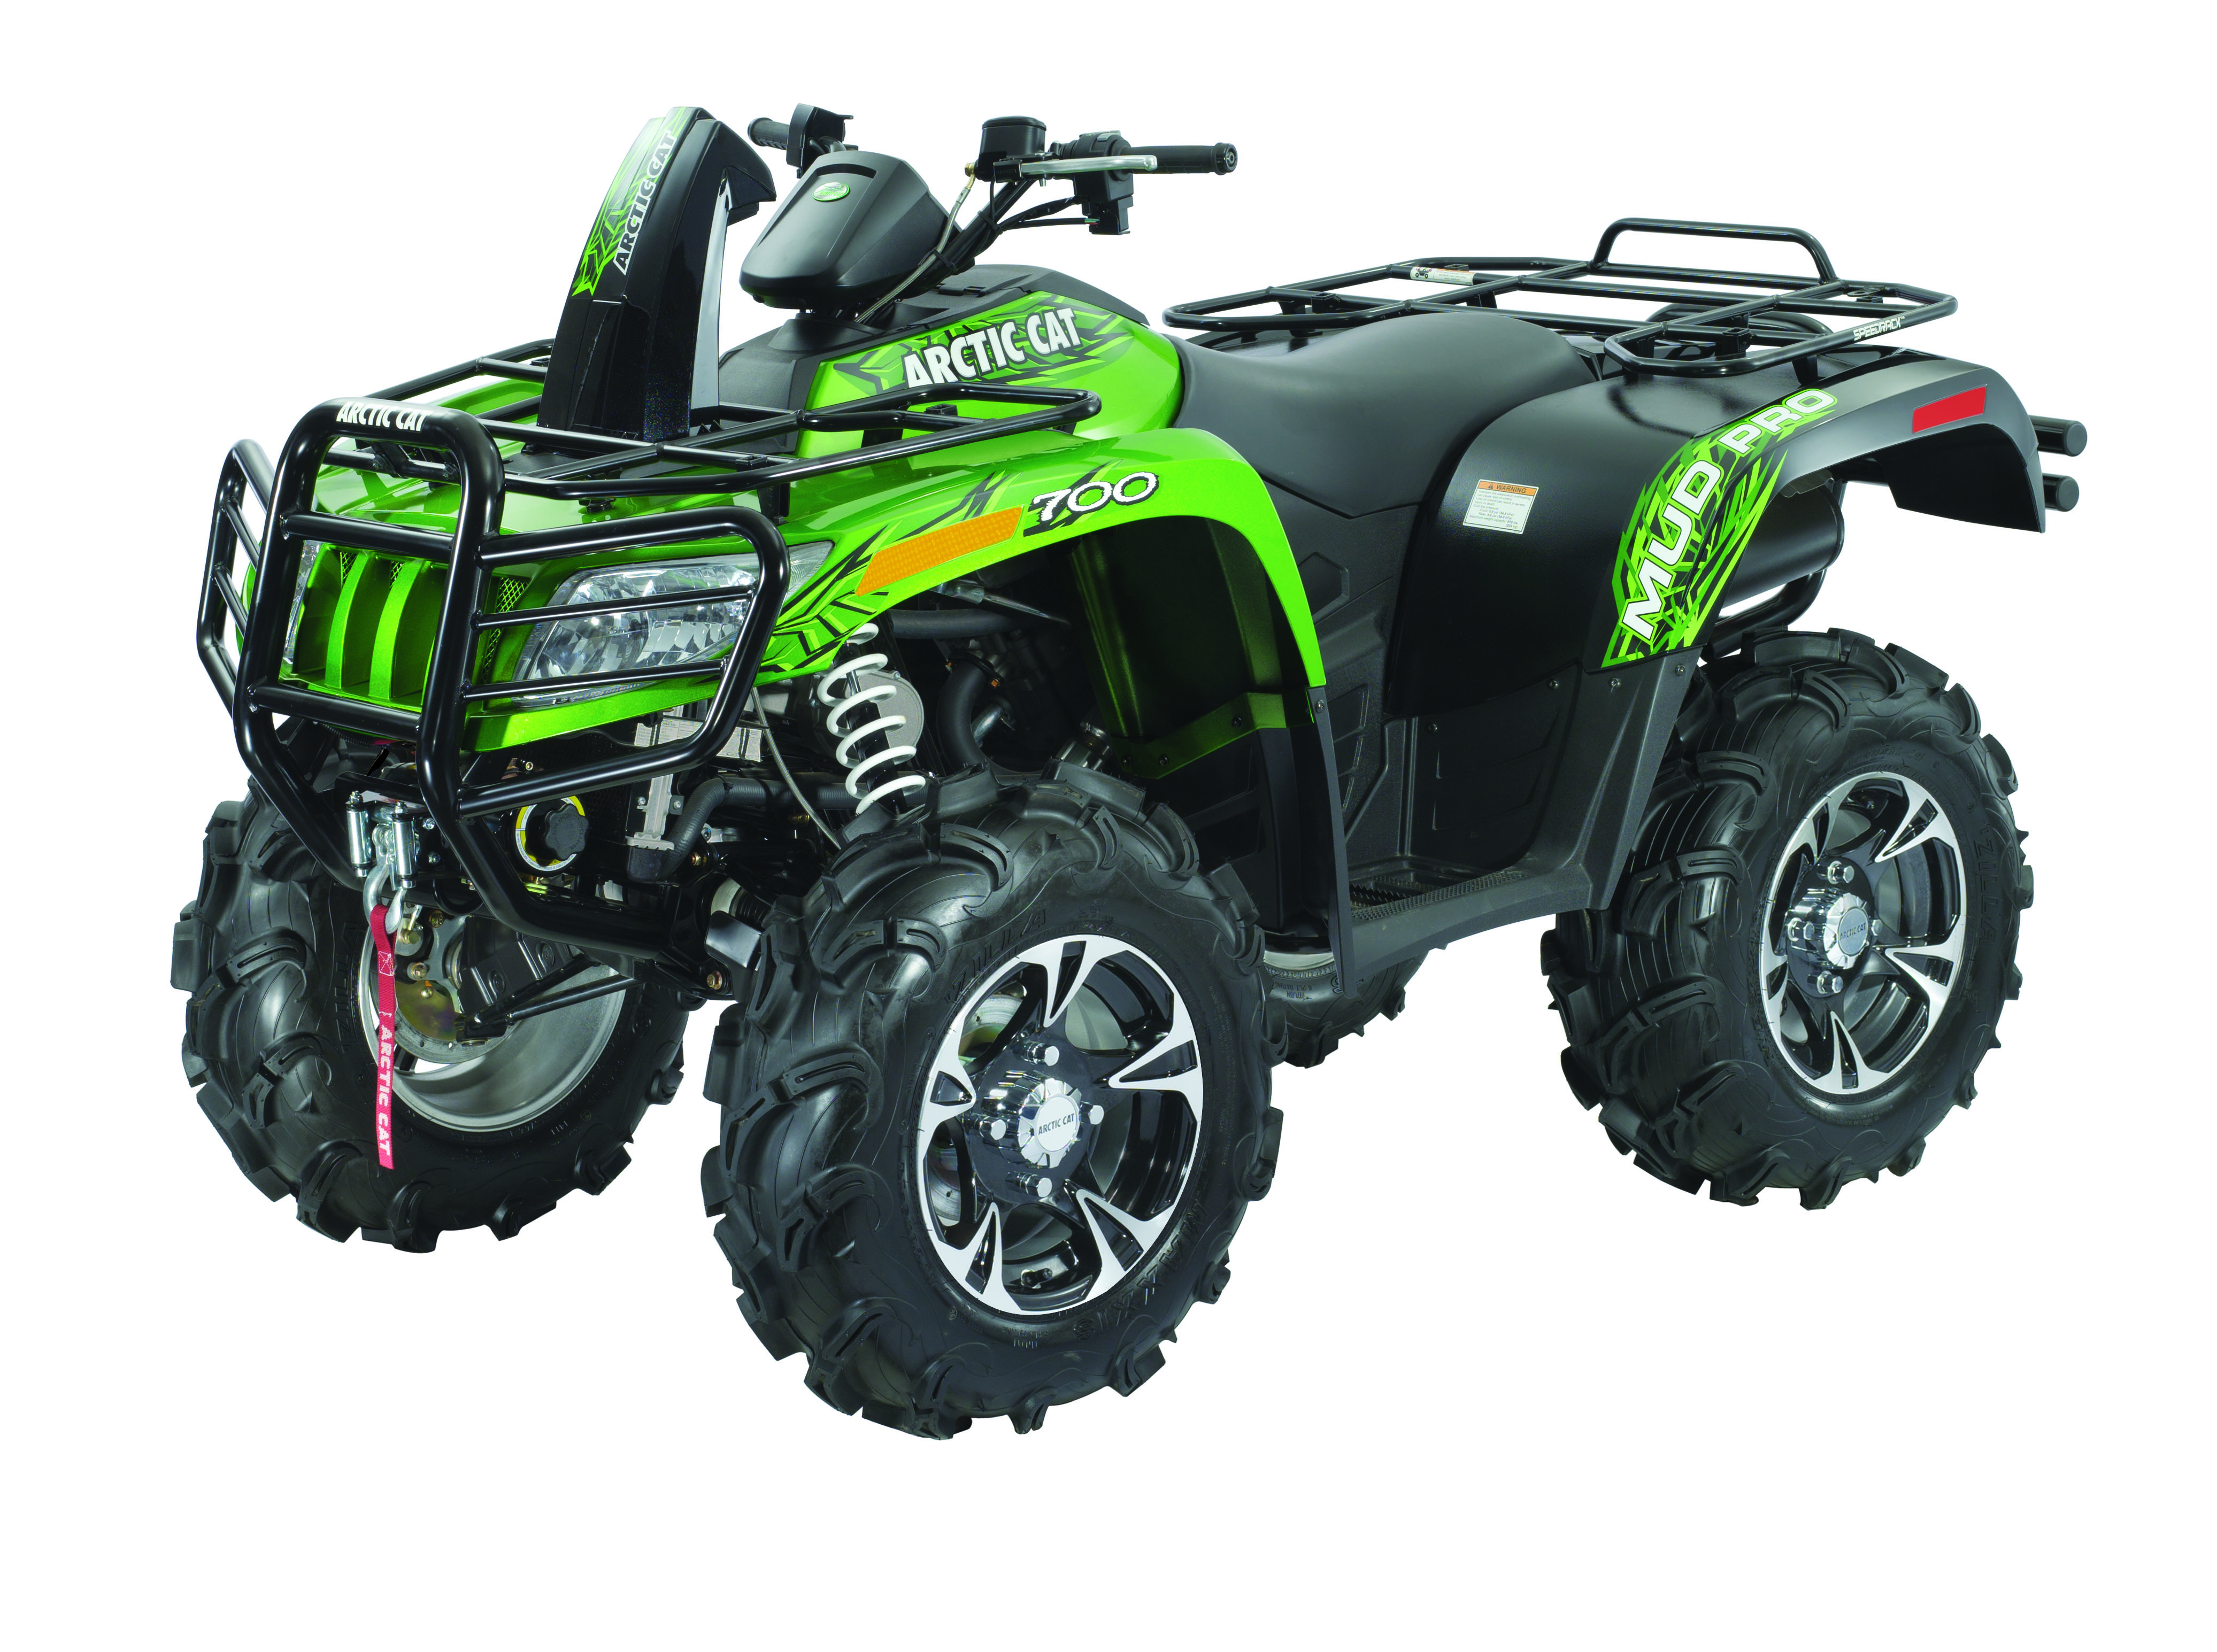 2013 New ATVs and UTVs